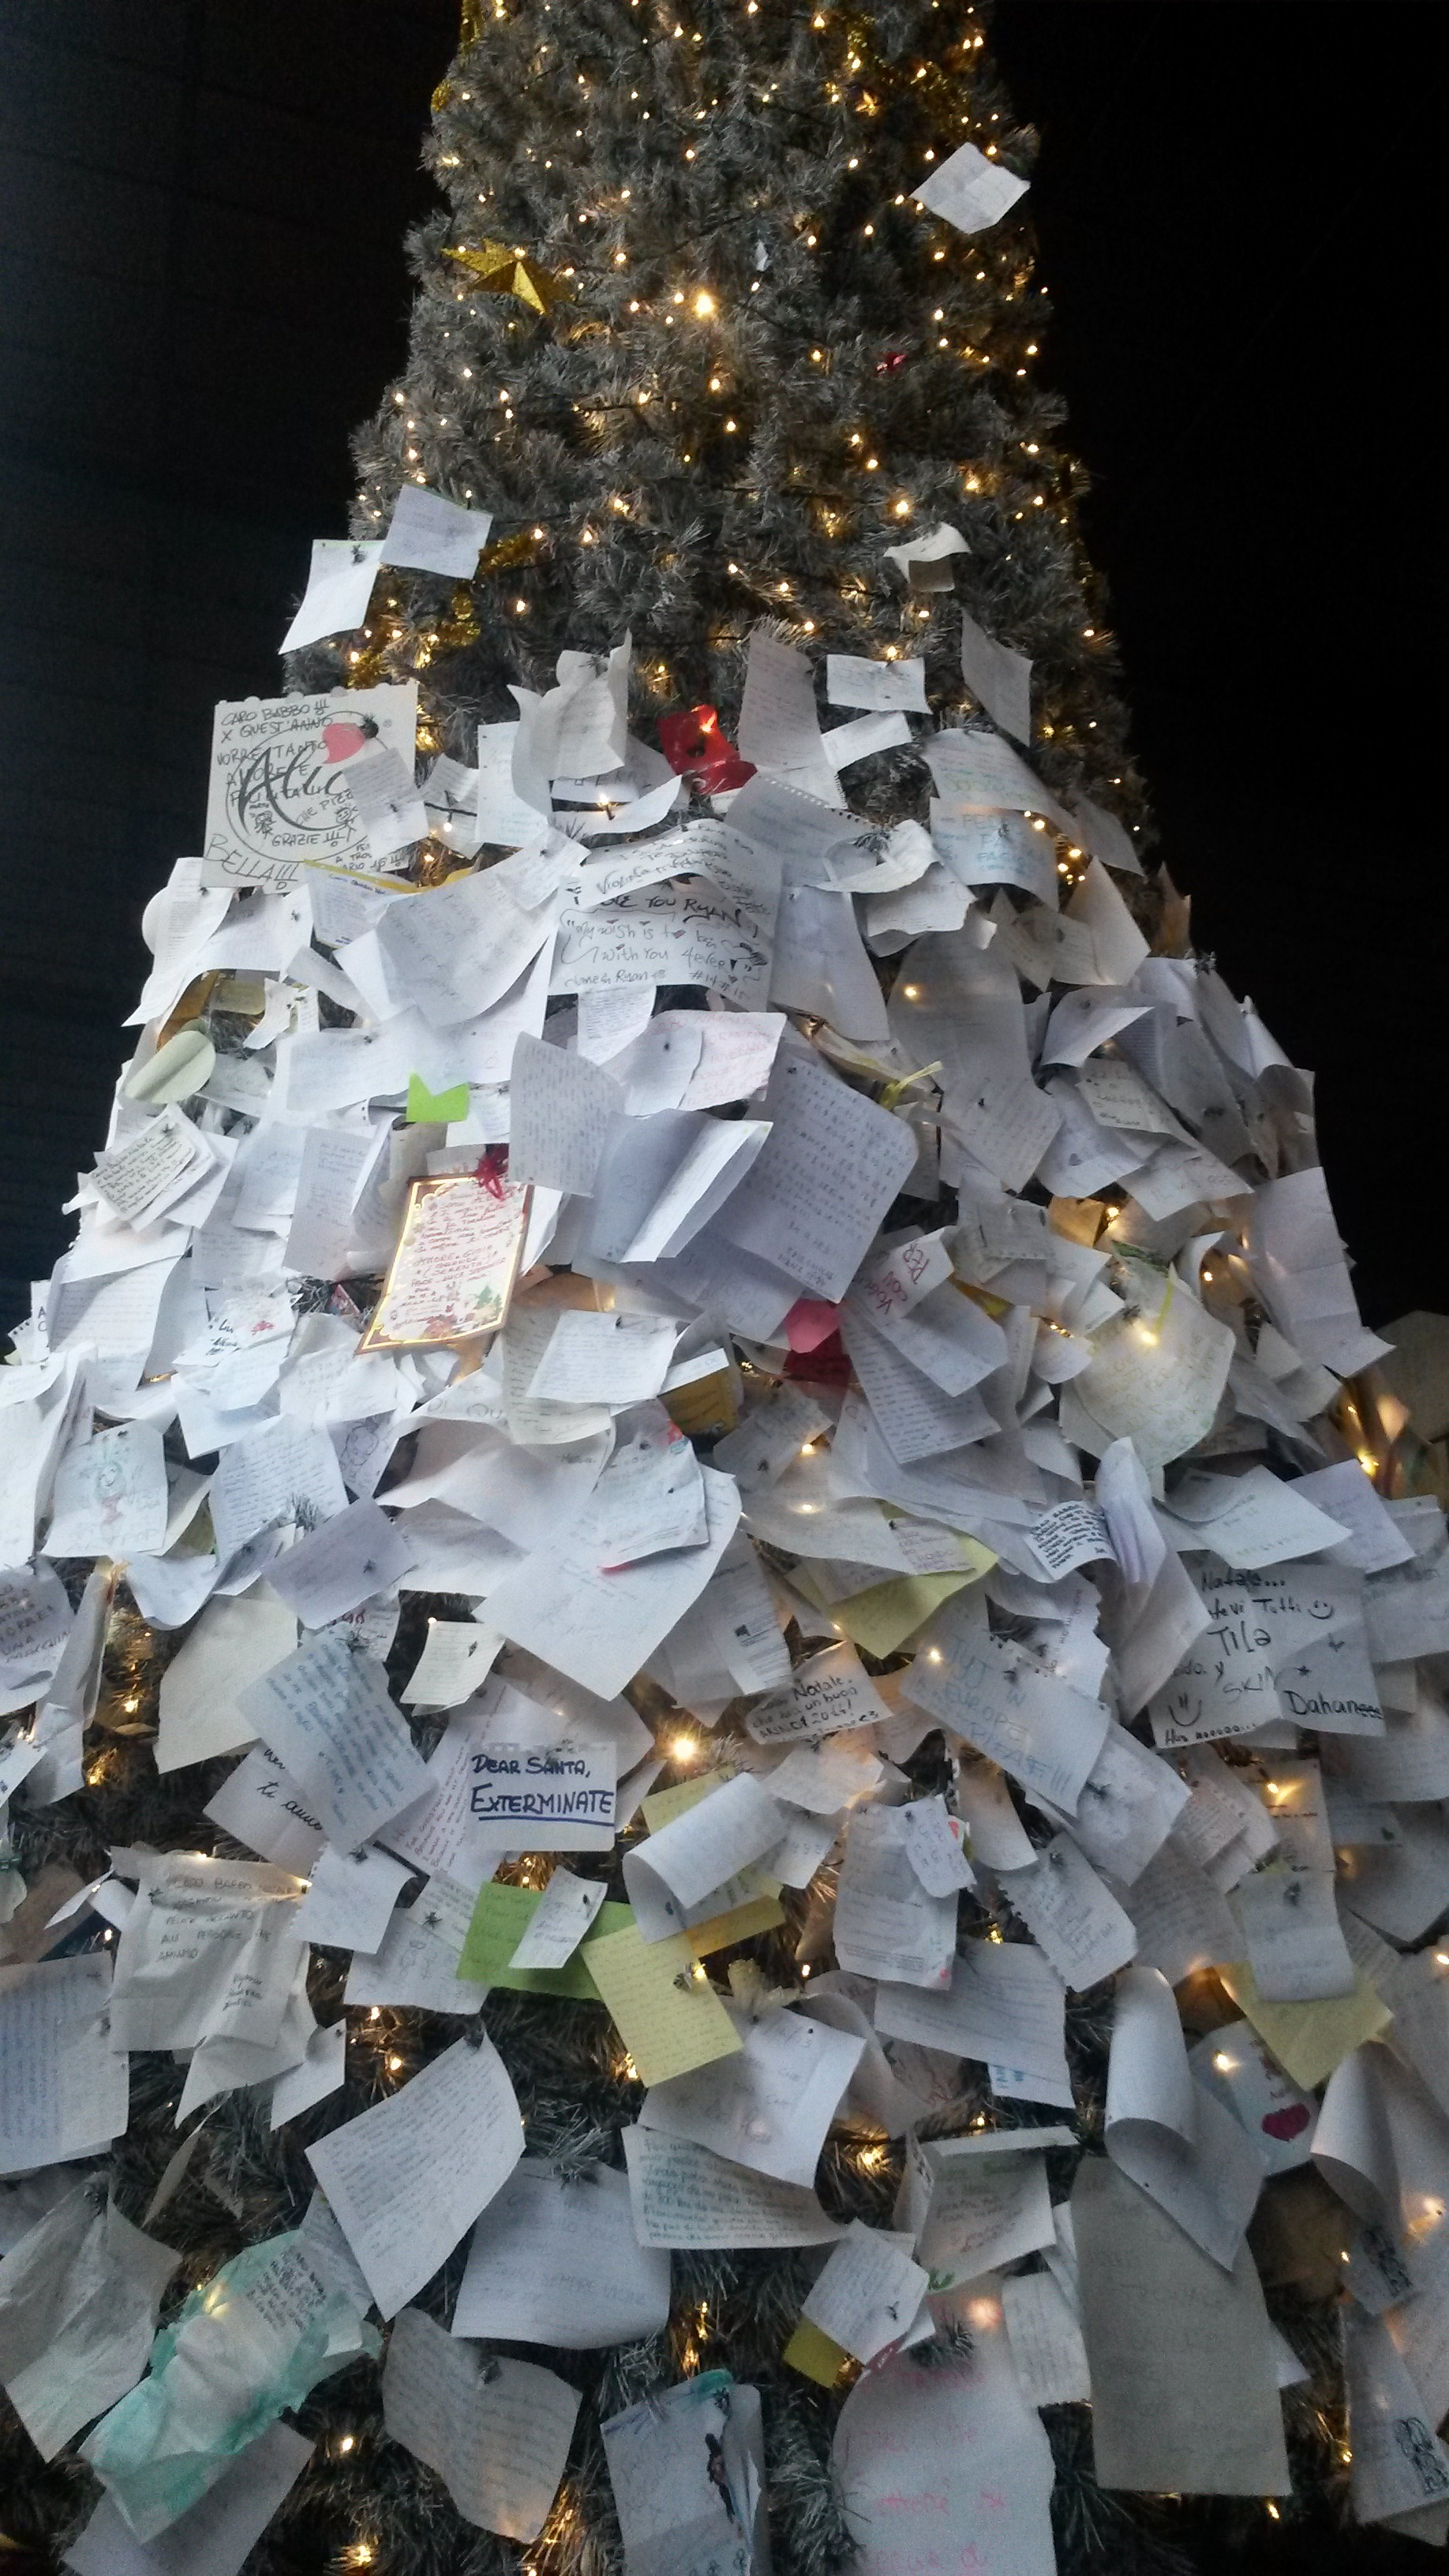 A Christmas tree in Italy covered with wishes.